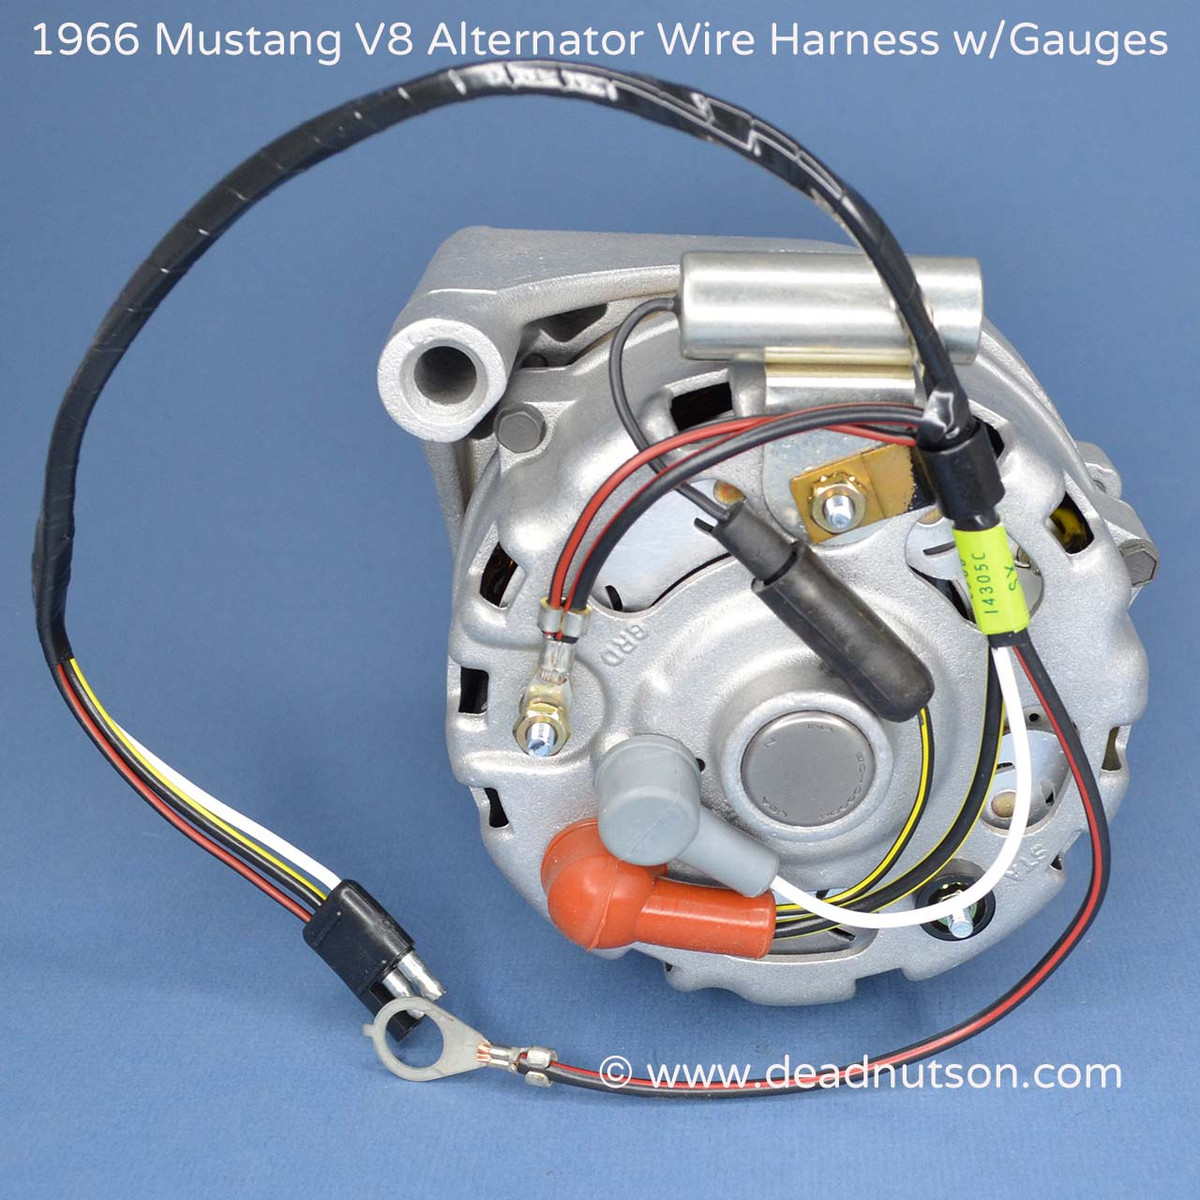 hight resolution of 1964 1965 mustang alternator wire harness tag 289 w instrument gauges